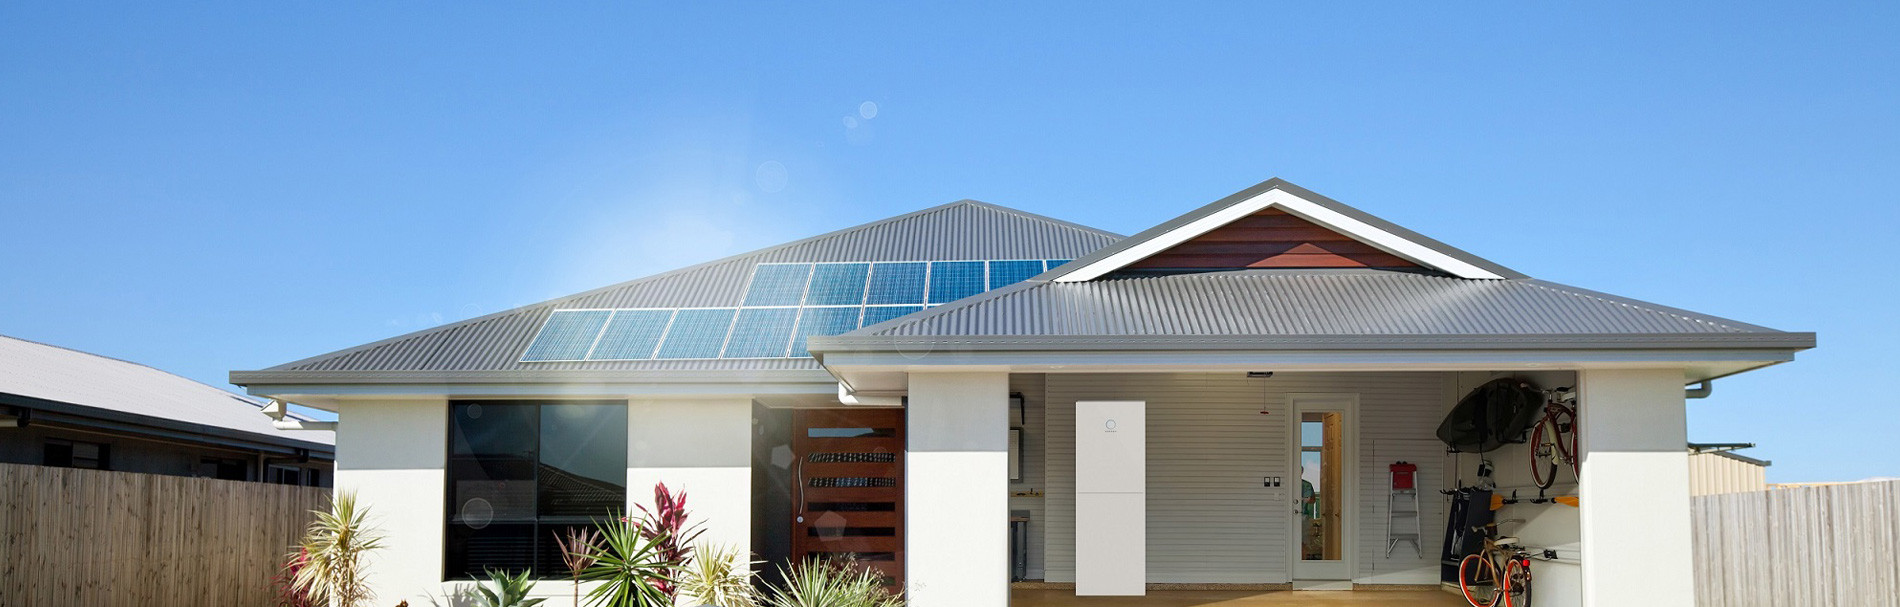 Australian house with solar and batterie